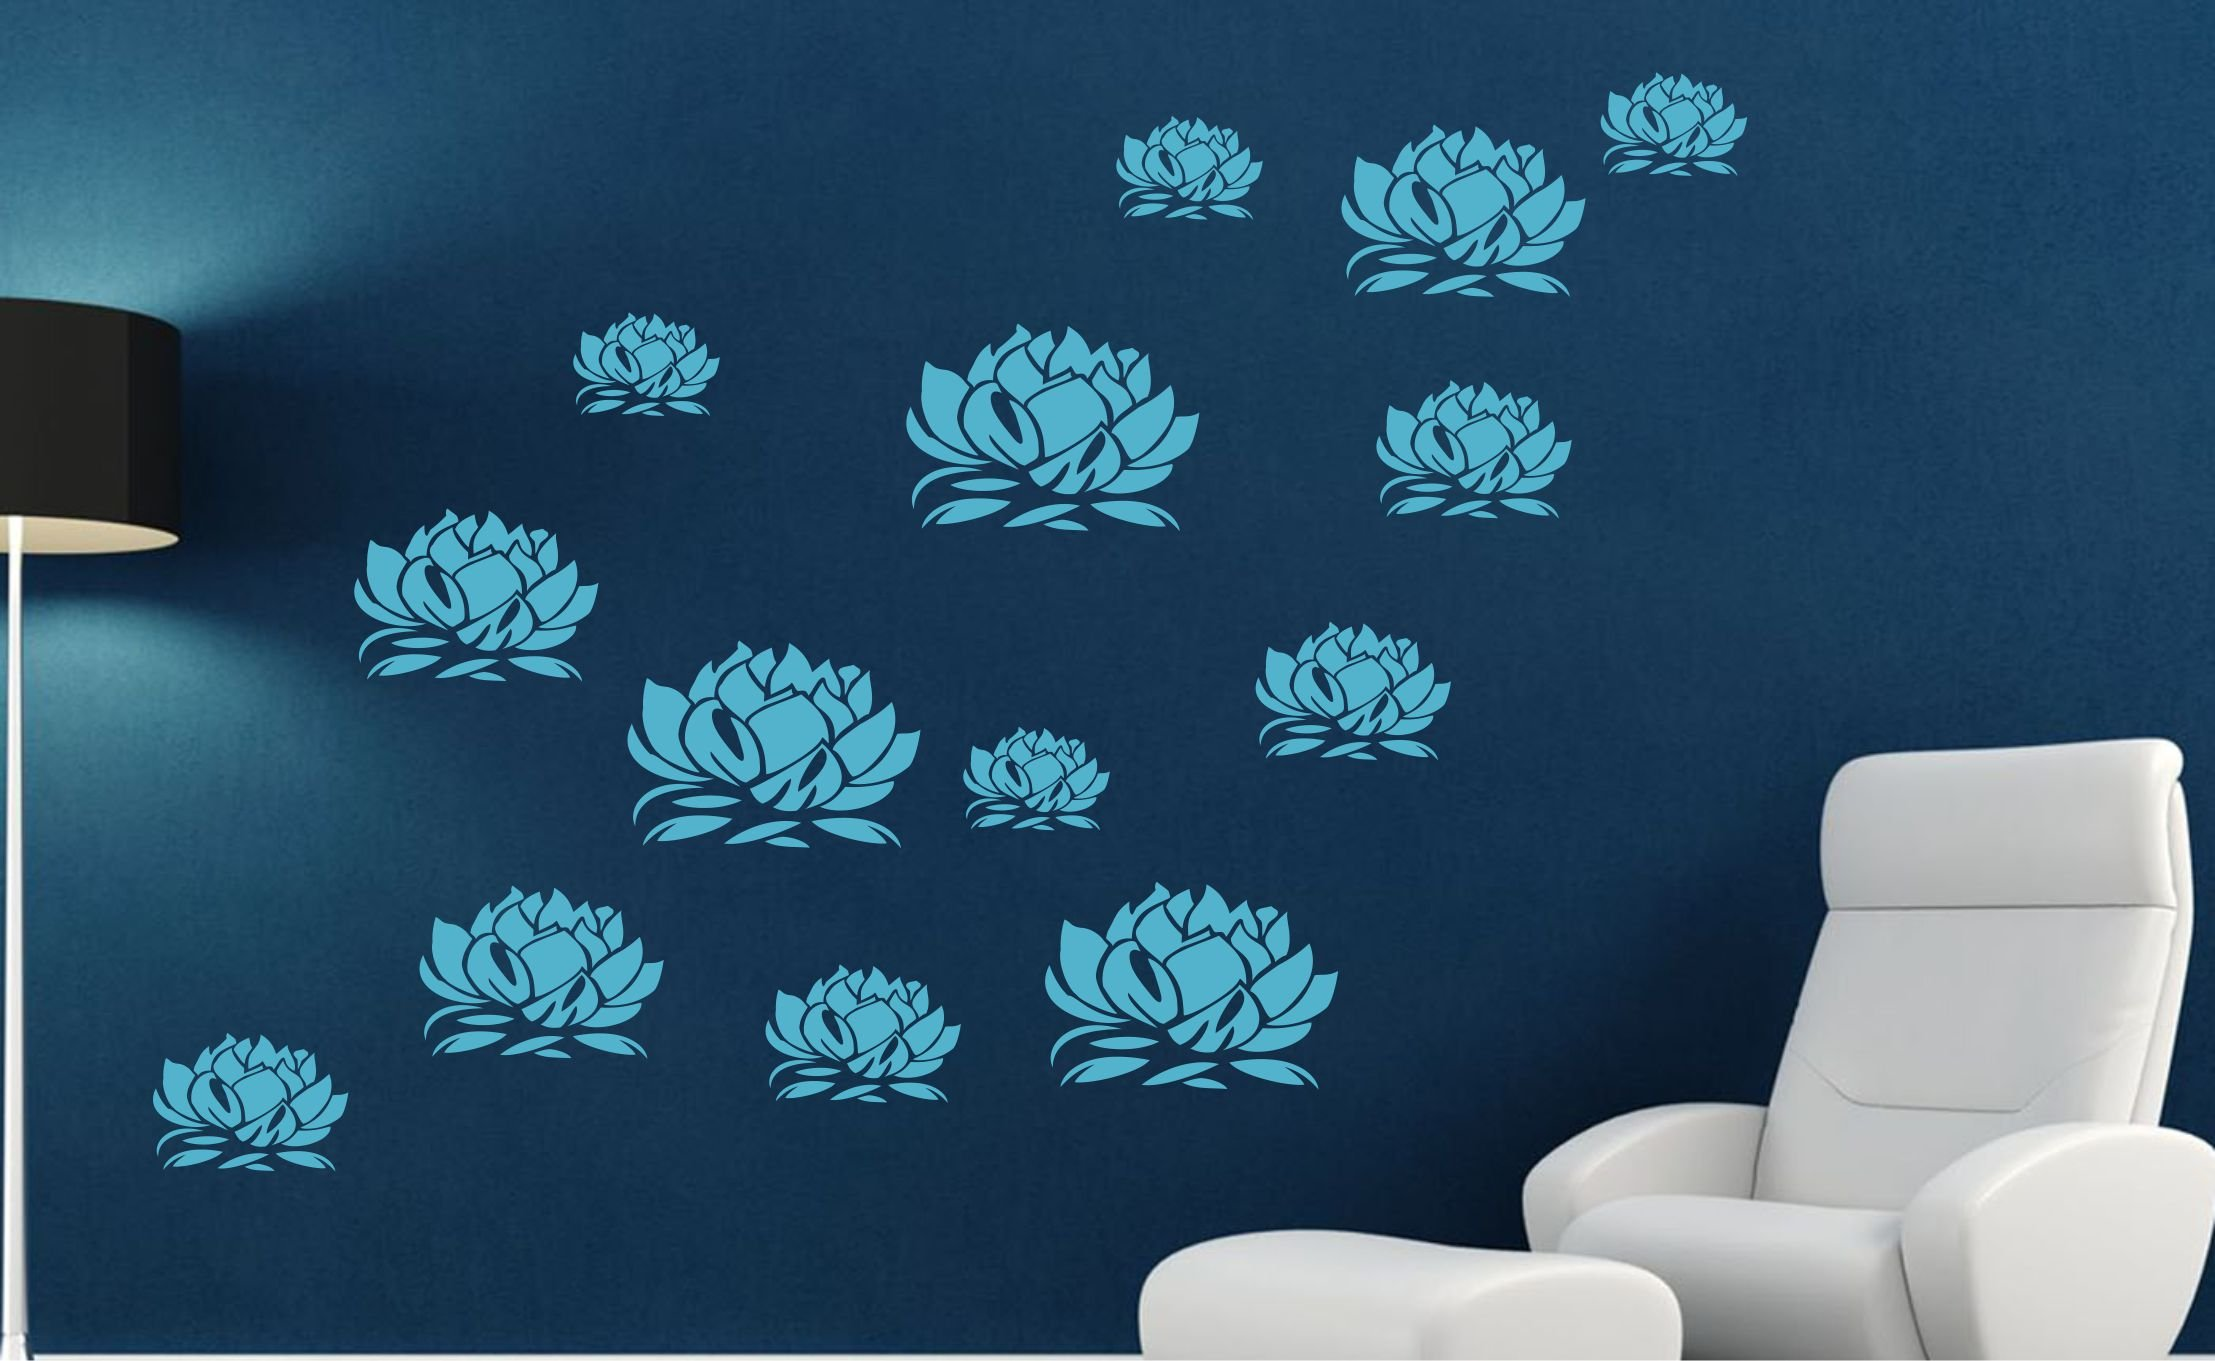 Lotus Blossom Stencil - (size 12''w x 8.25''h) Reusable Wall Stencils for Painting - Best Quality Lotus Flower Stencil Ideas - Use on Walls, Floors, Fabrics, Glass, Wood, Terracotta, and More... by Stencils for Walls